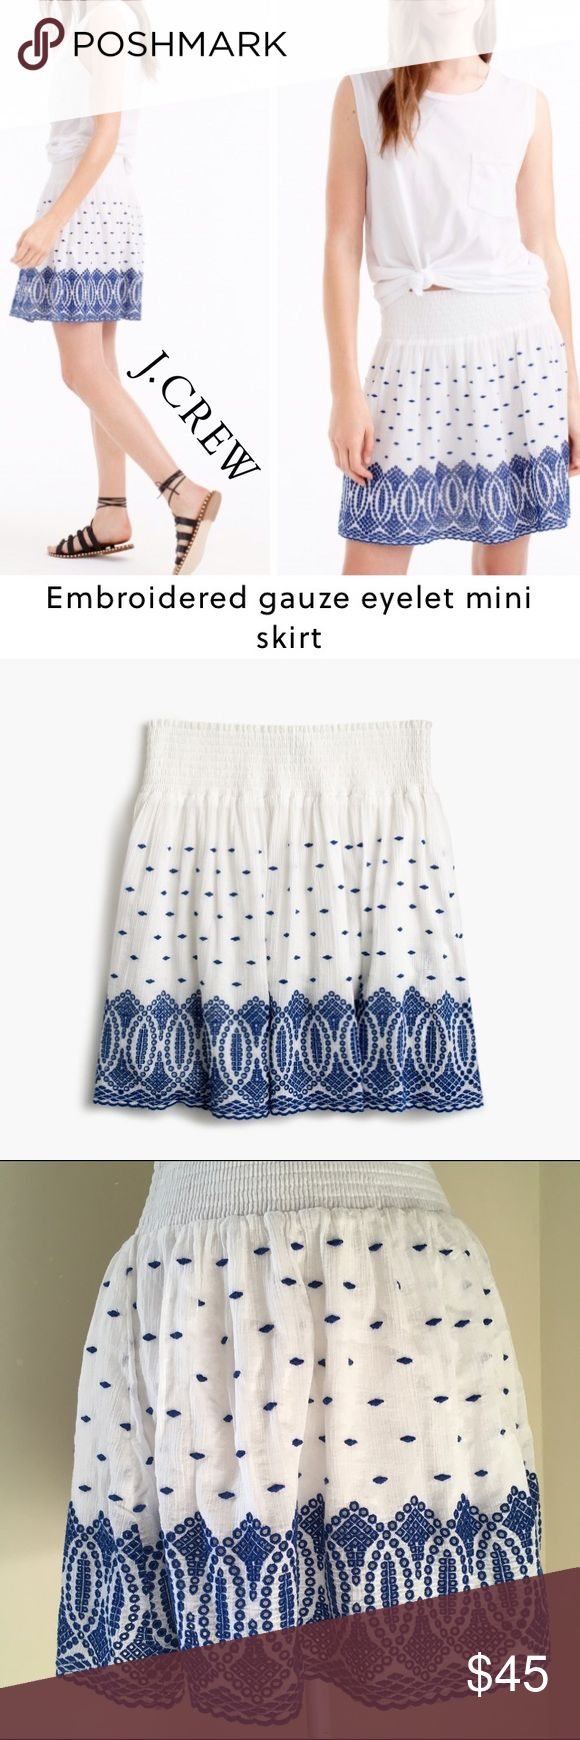 """J. Crew Embroidered Gauze Eyelet Mini Skirt NWT An easy peasant-style skirt crafted in airy cotton gauze with eyelet embroidery. It'll be your go-to skirt this summer, especially on weekend beach trips. 17.25"""" long, 12.5"""" waist Cotton. Elastic waistband. Lined. Machine wash. Sits at waist. Falls above knee. NEW WITH TAG; label marked through J. Crew Skirts Mini"""